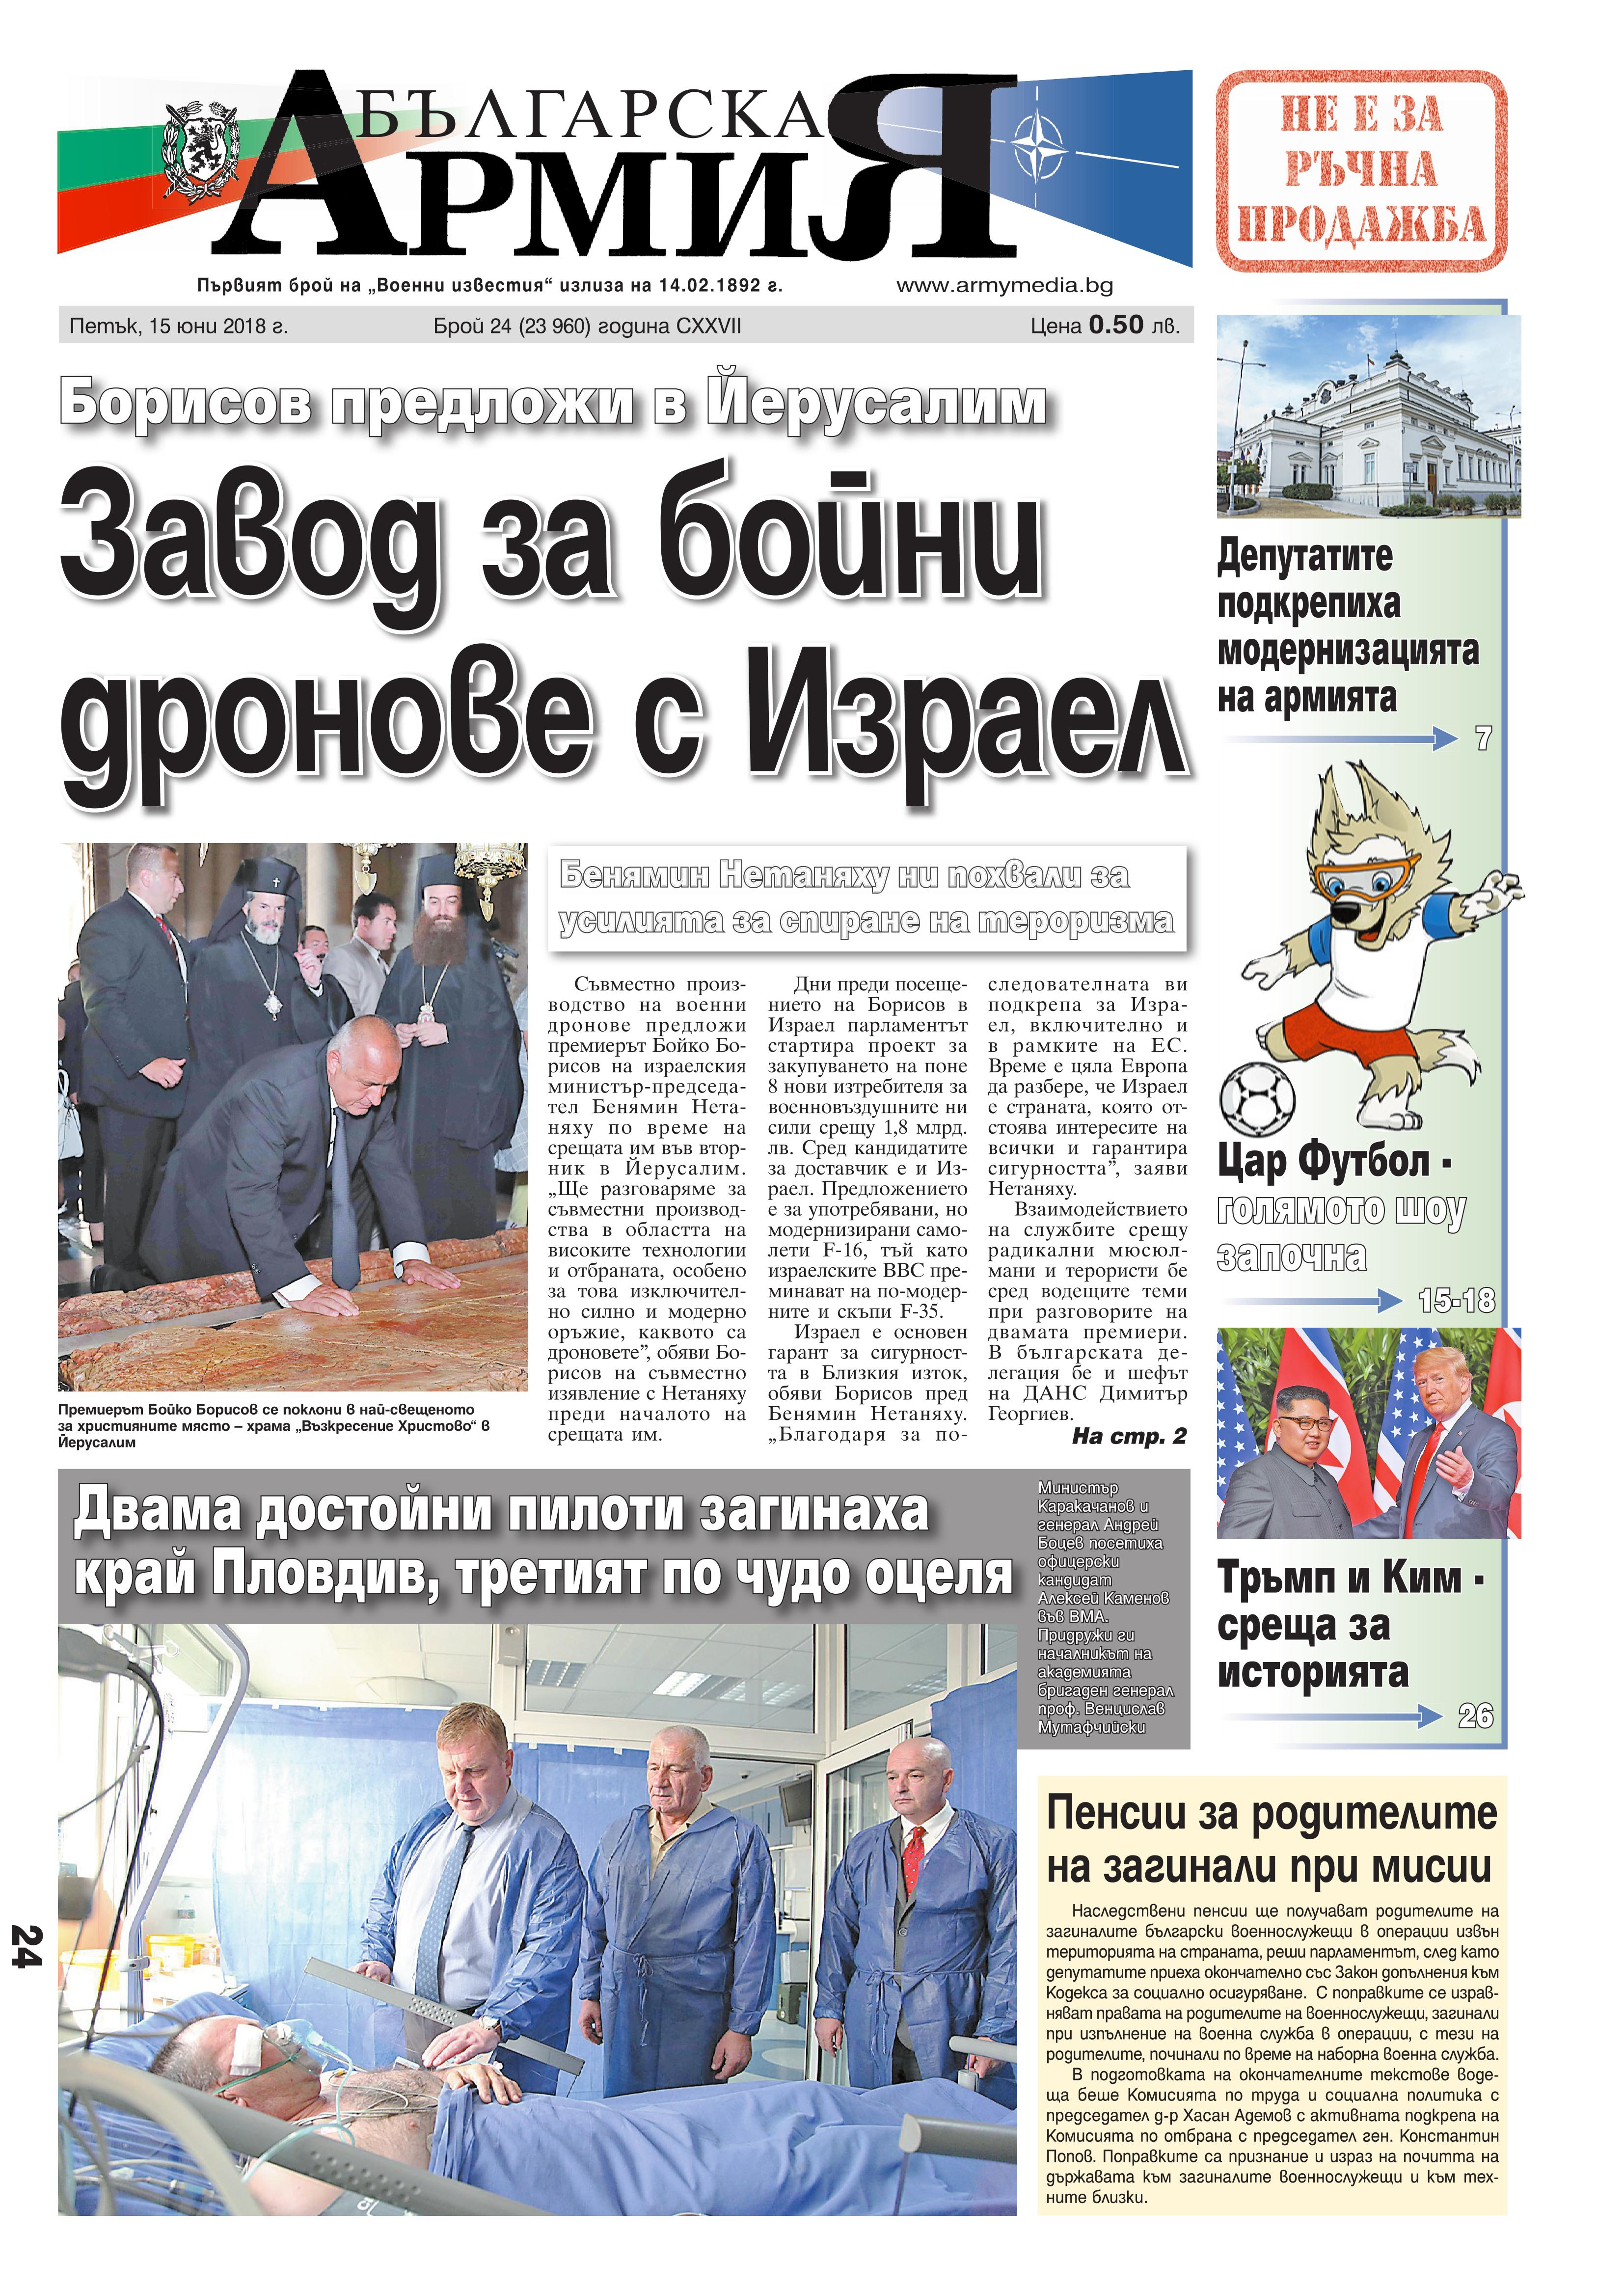 http://armymedia.bg/wp-content/uploads/2015/06/01.page1_-52.jpg